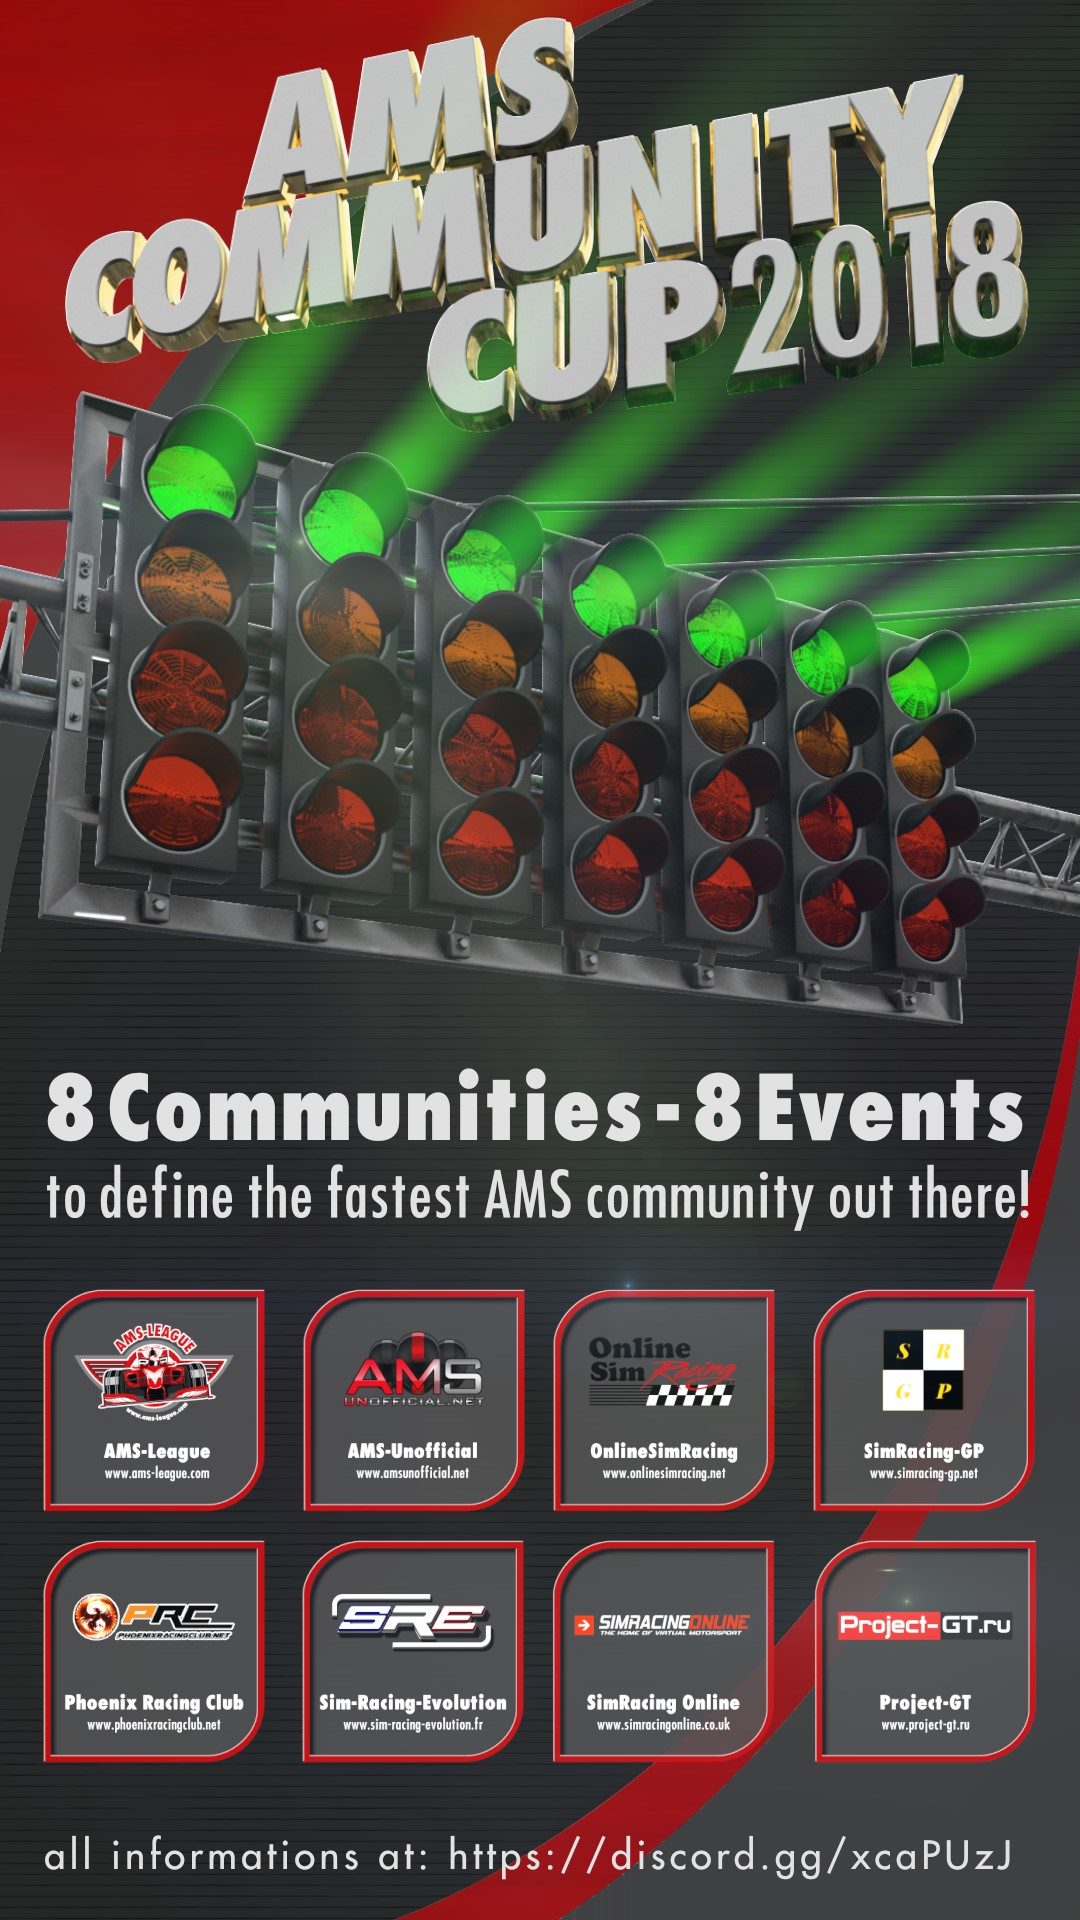 AMScommunityCup2018_8coms_poster.jpg